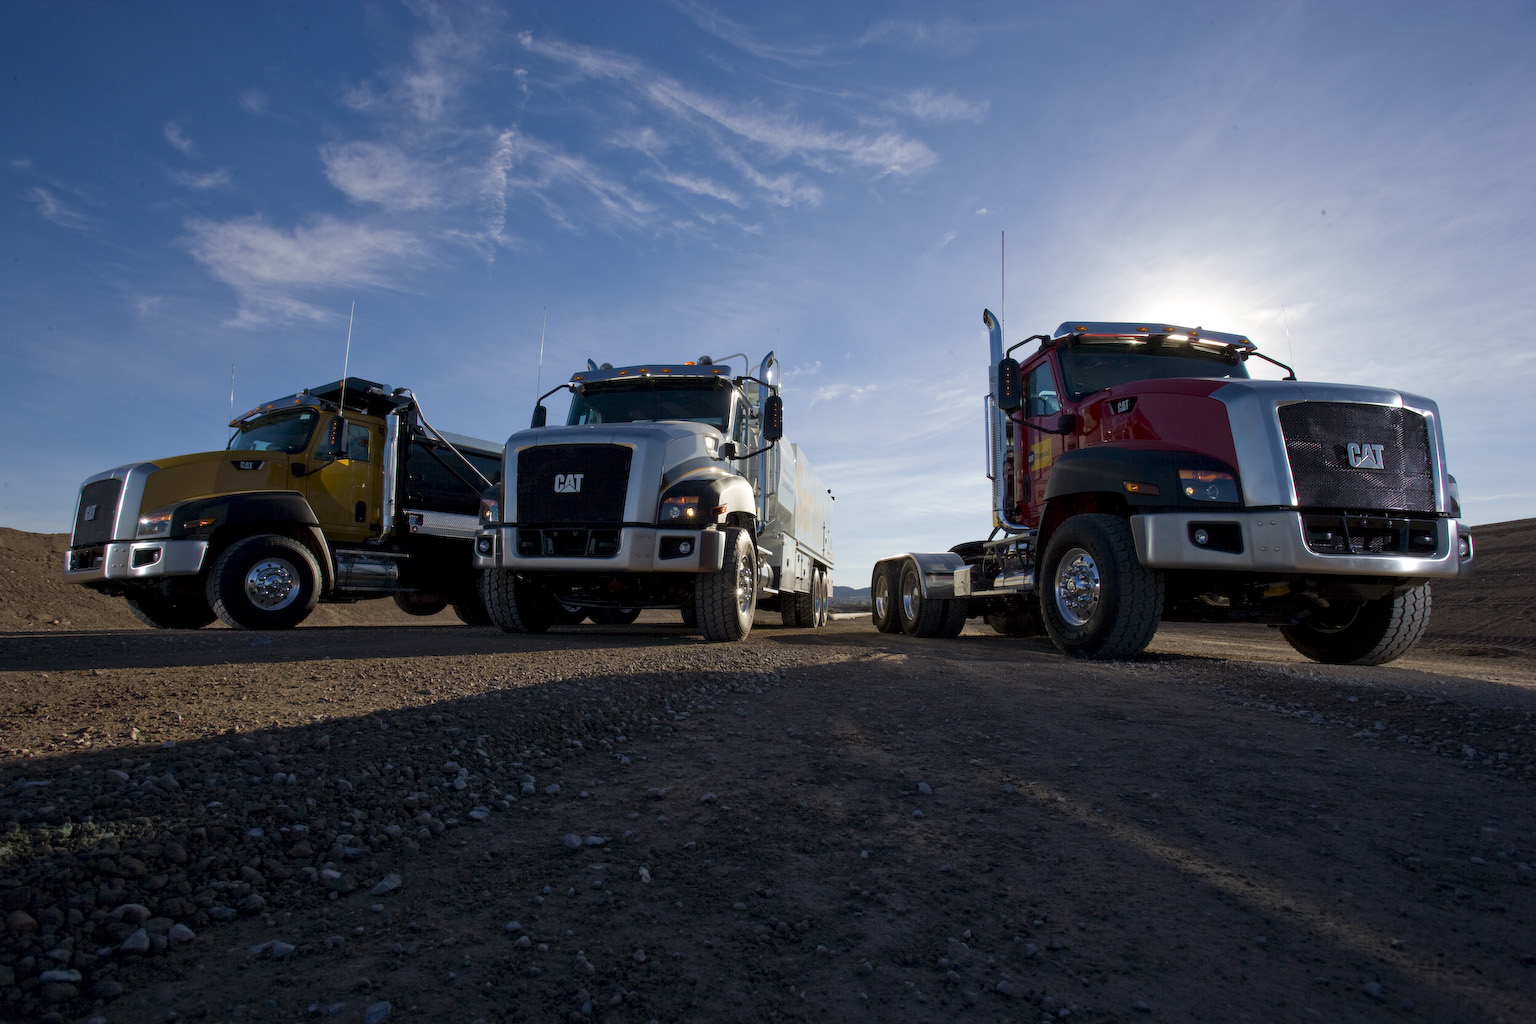 3 On-Highway Caterpillar Trucks